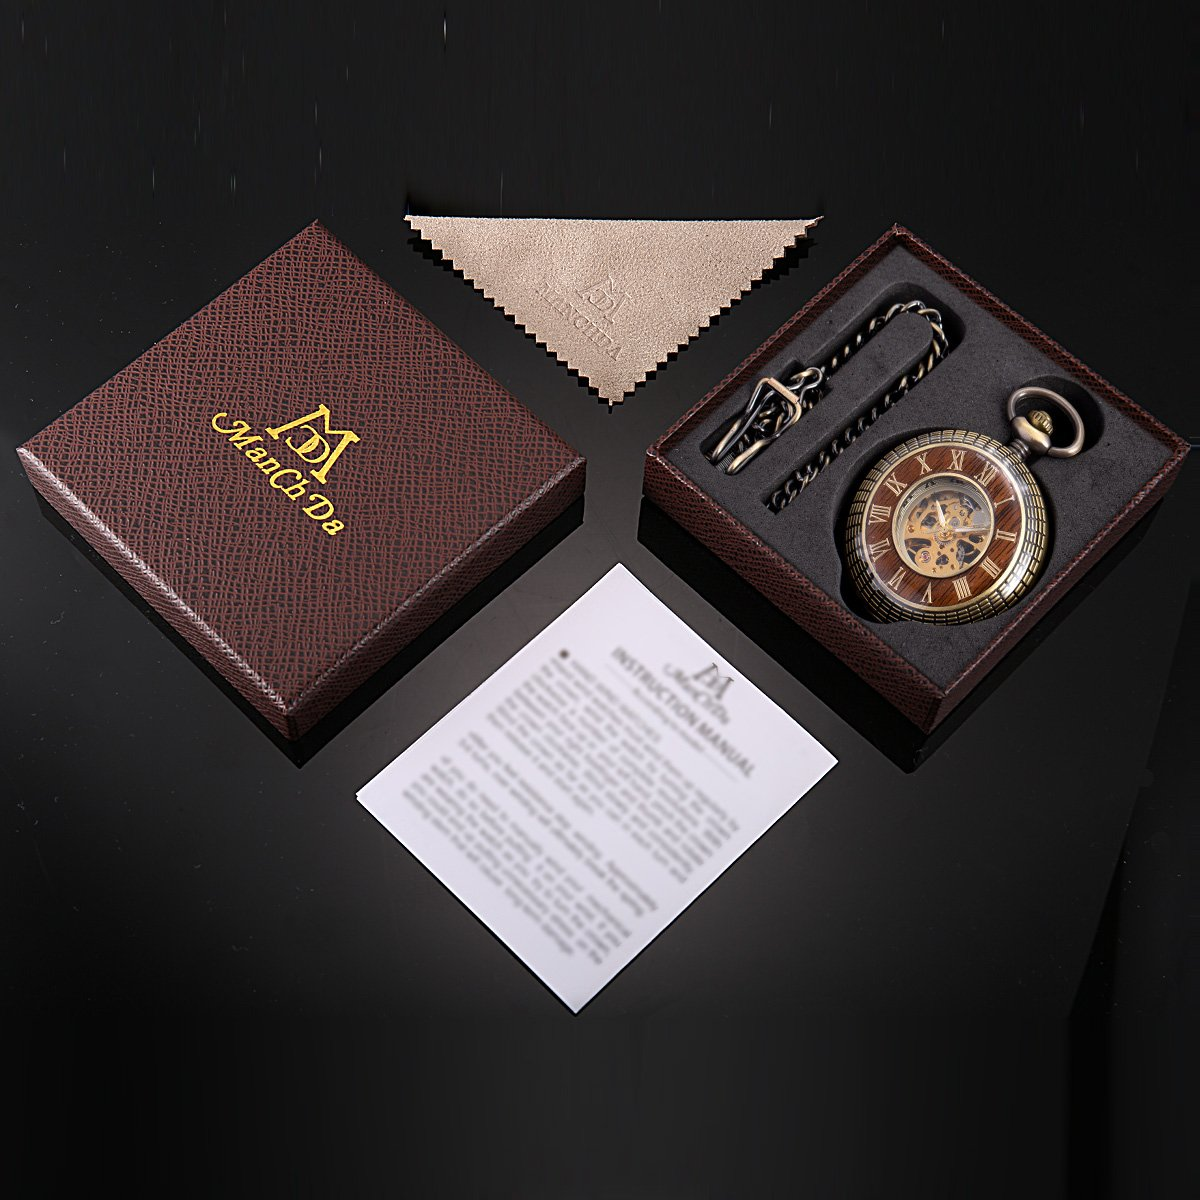 ManChDa Mens imitative wood Luminous Skeleton Mechanical Roman Numerals Pocket Watch With Chain Gift by ManChDa (Image #6)